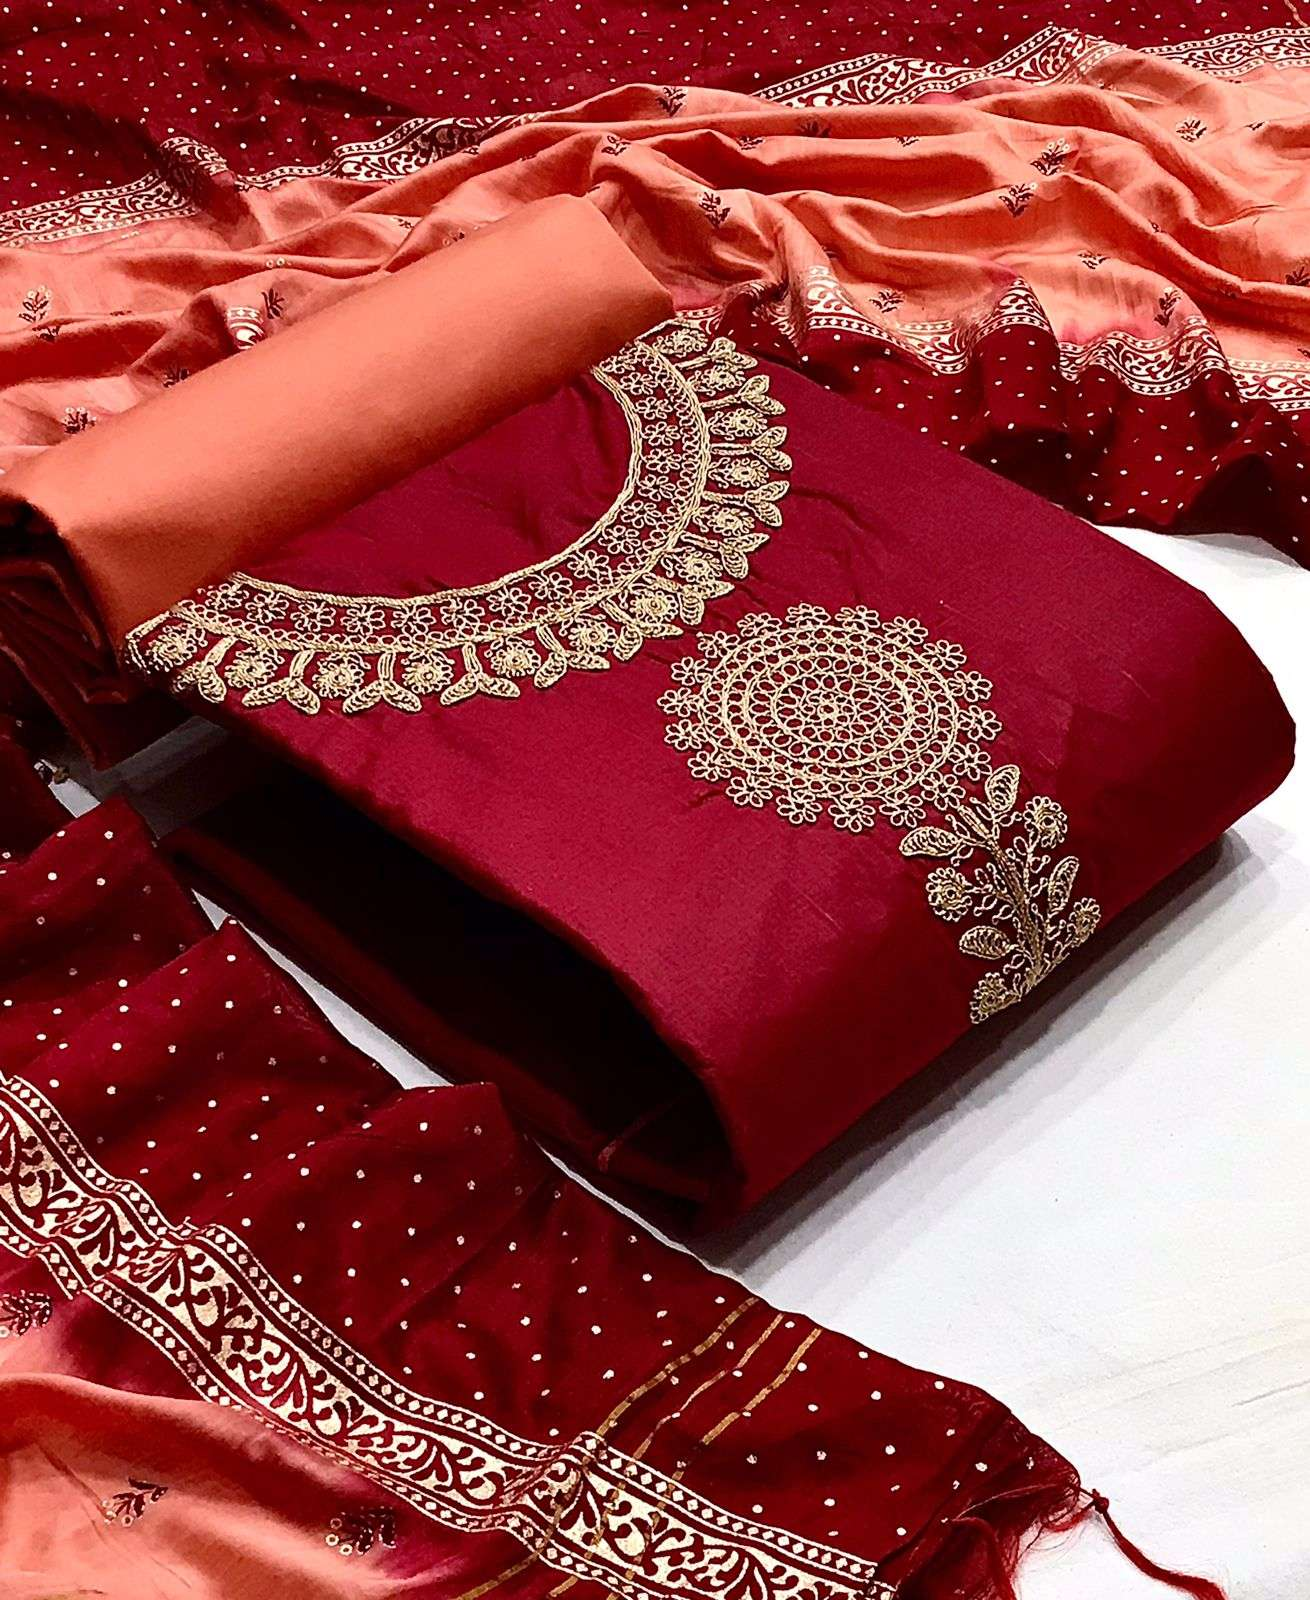 D.NO. 3 DESIGNER COTTON WITH NECK COADING EMBROIDERY WORK CASUAL WEAR SUITS IN SINGLES